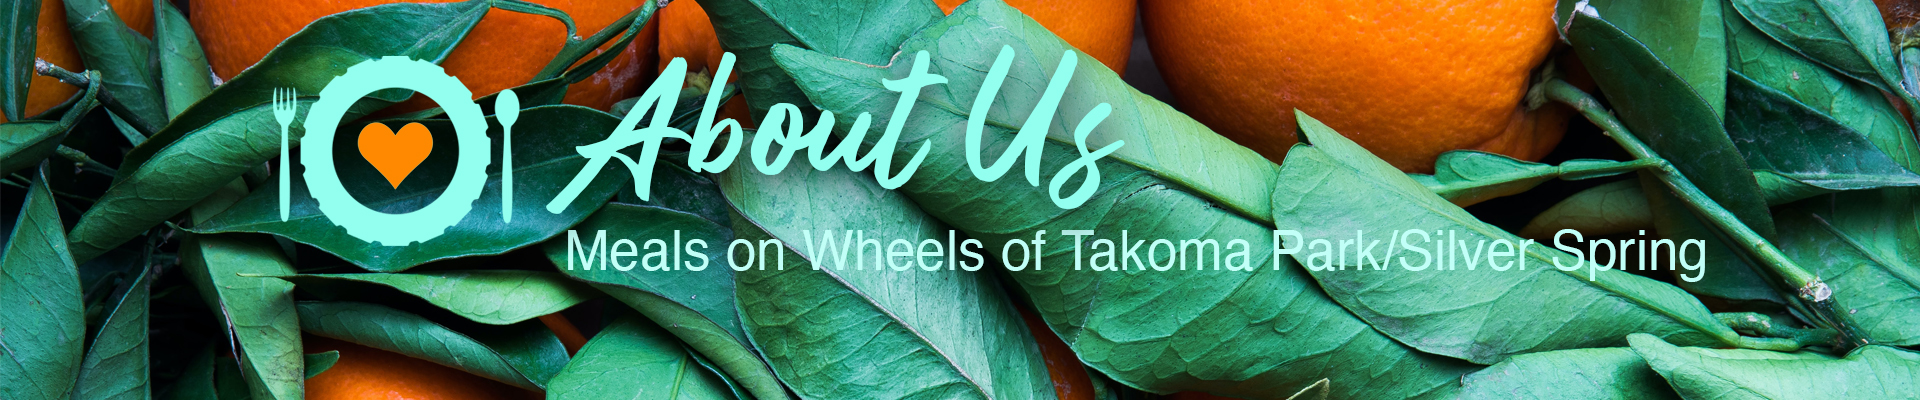 Meals on Wheels Takoma Park/Silver Spring MD